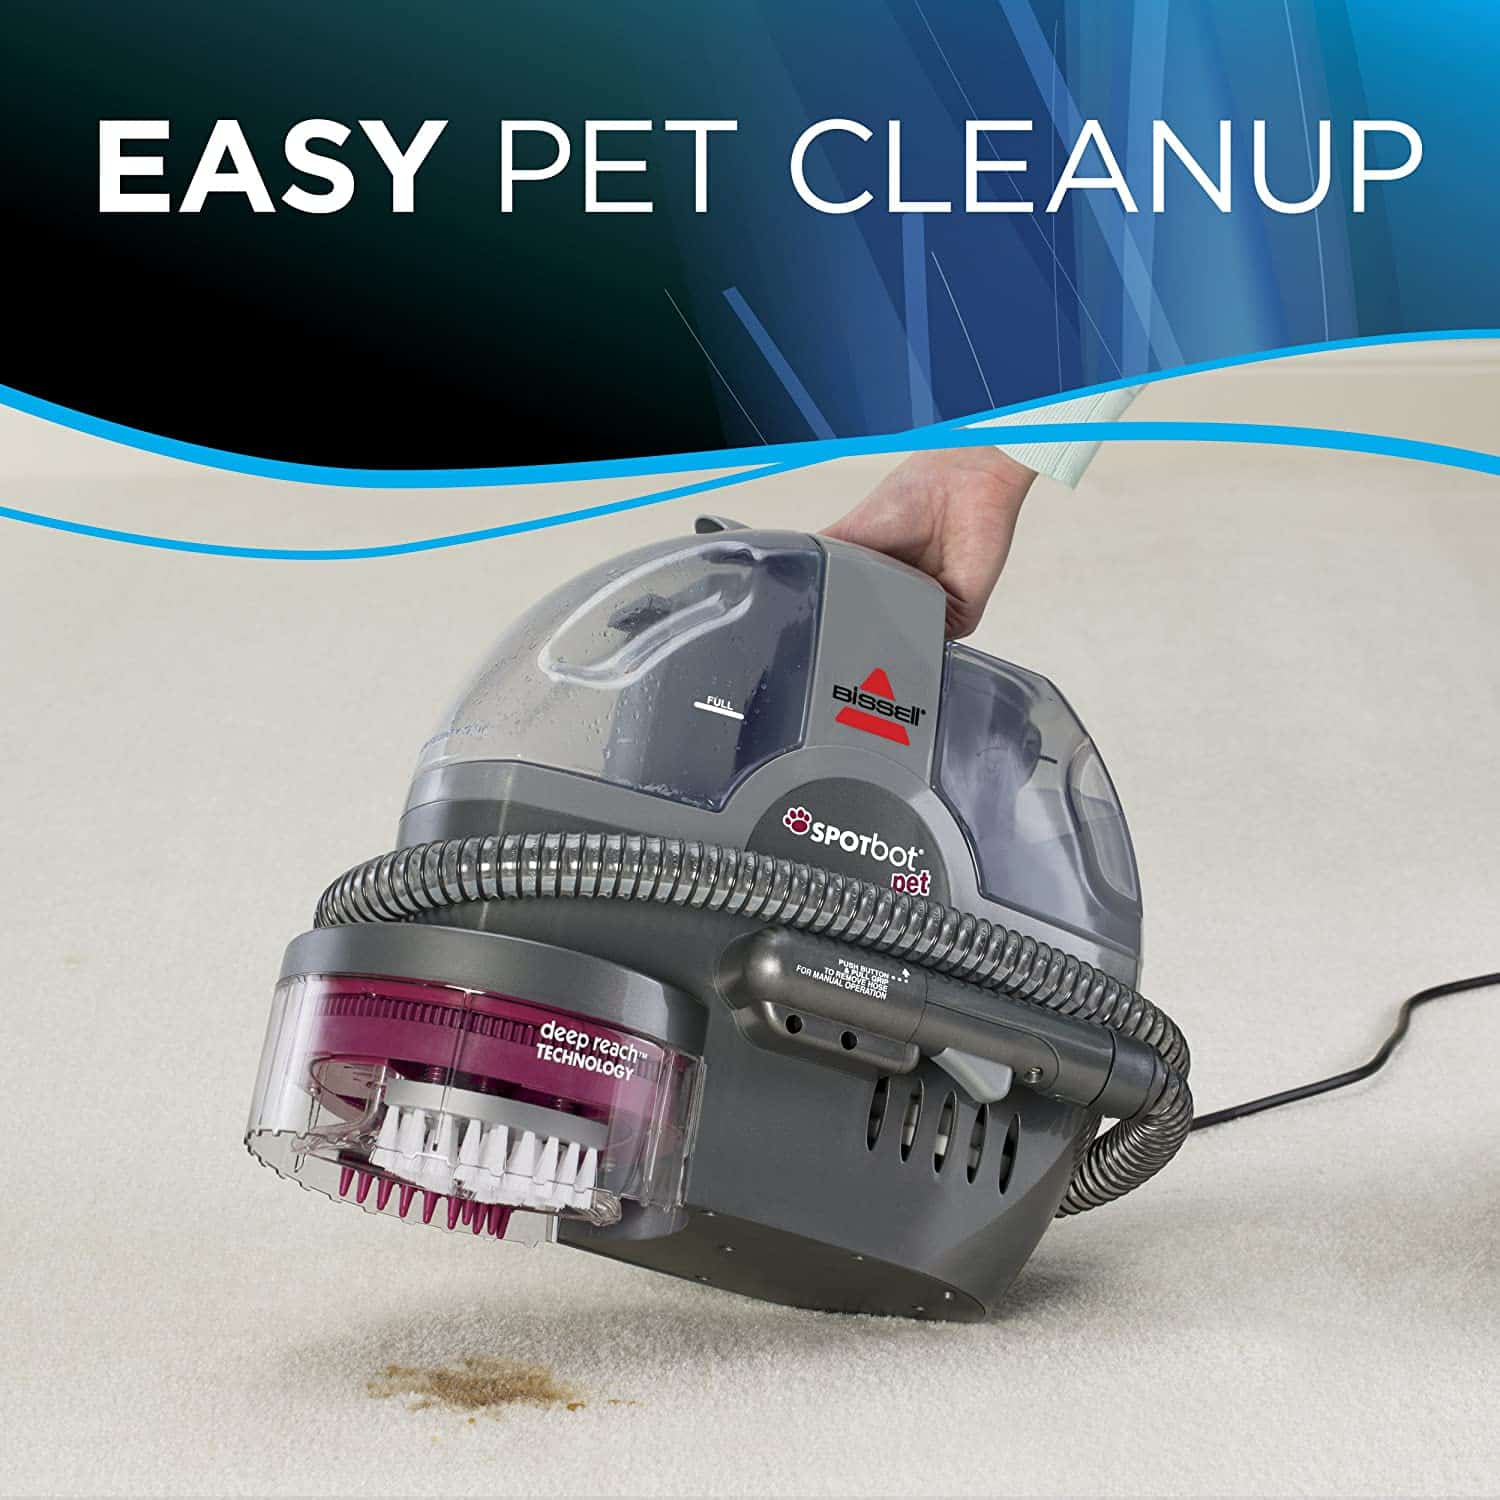 Best portable carpet cleaner for pet stains: Bissell 33N8A Spotbot